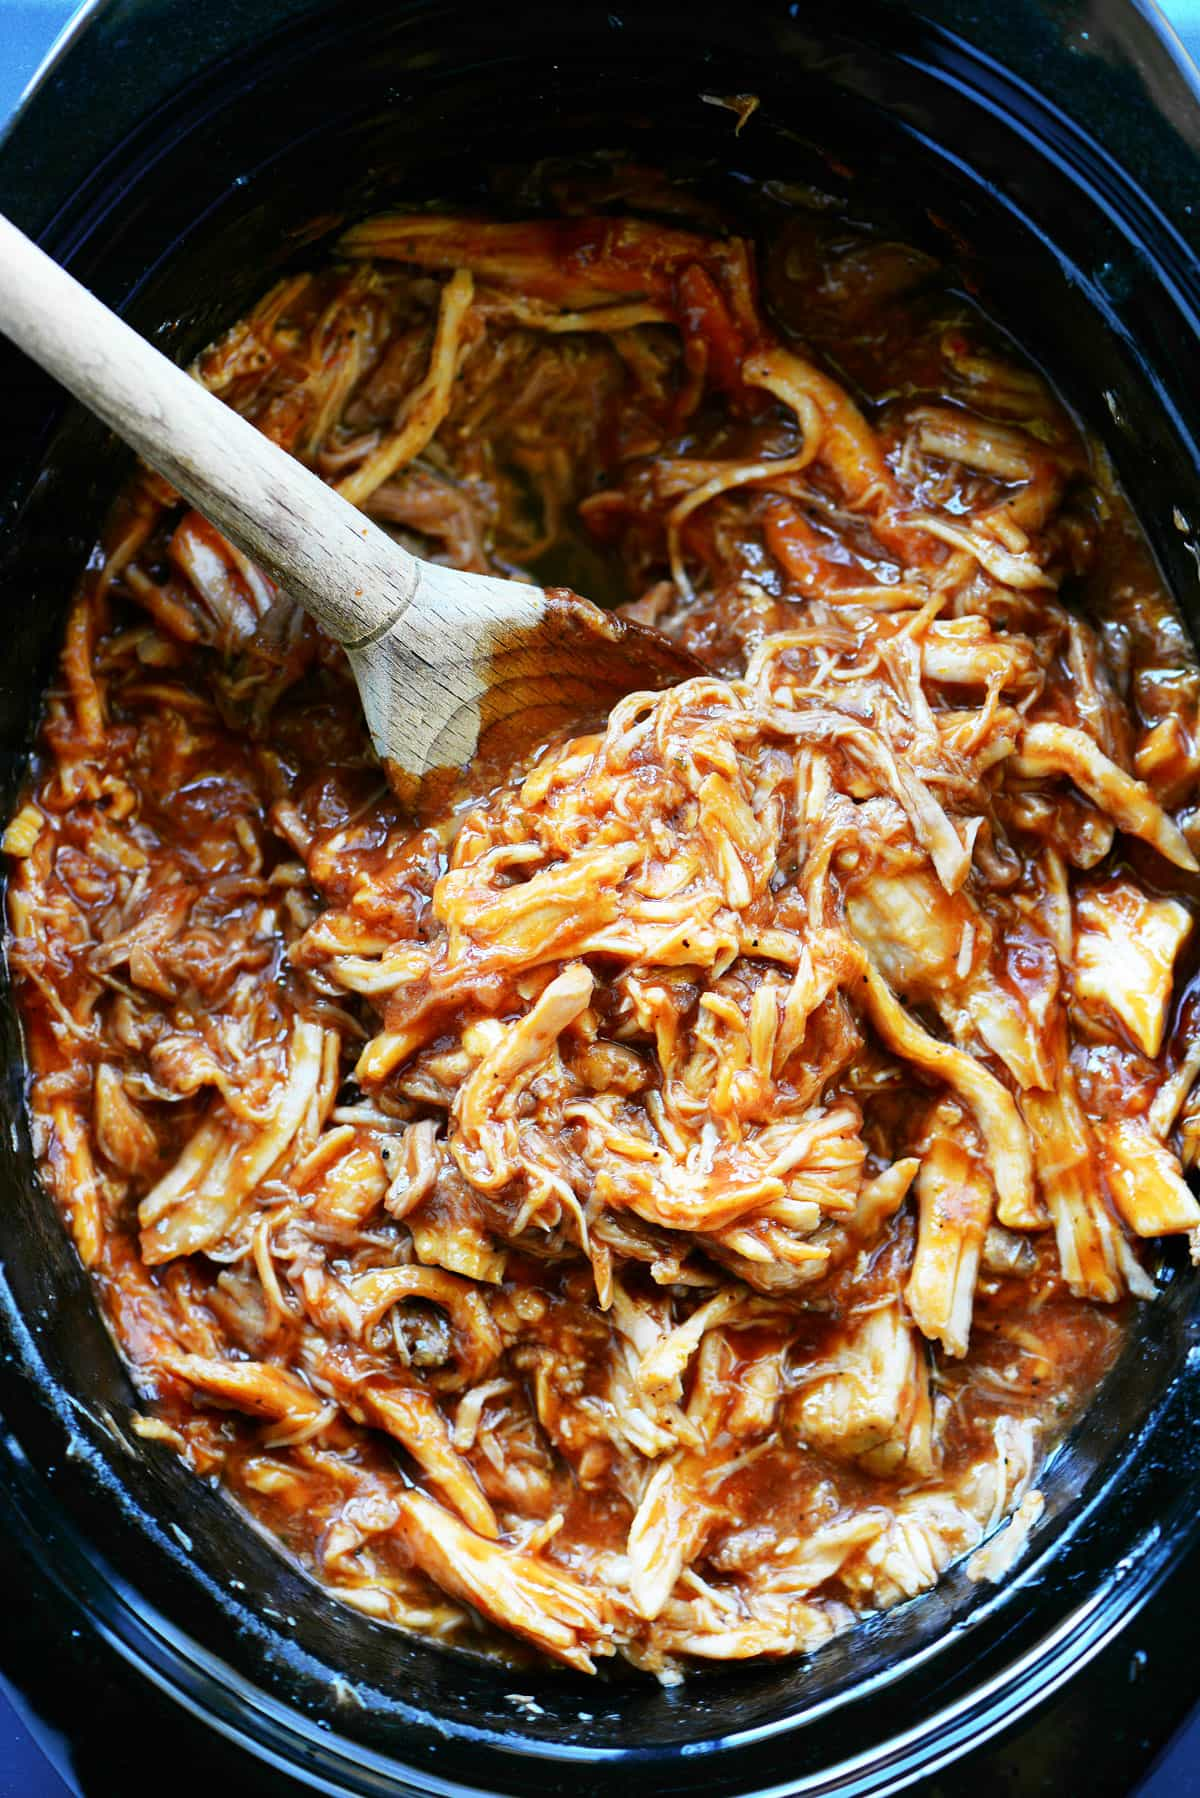 Slow Cooker Pulled Pork Recipe - The Gunny Sack